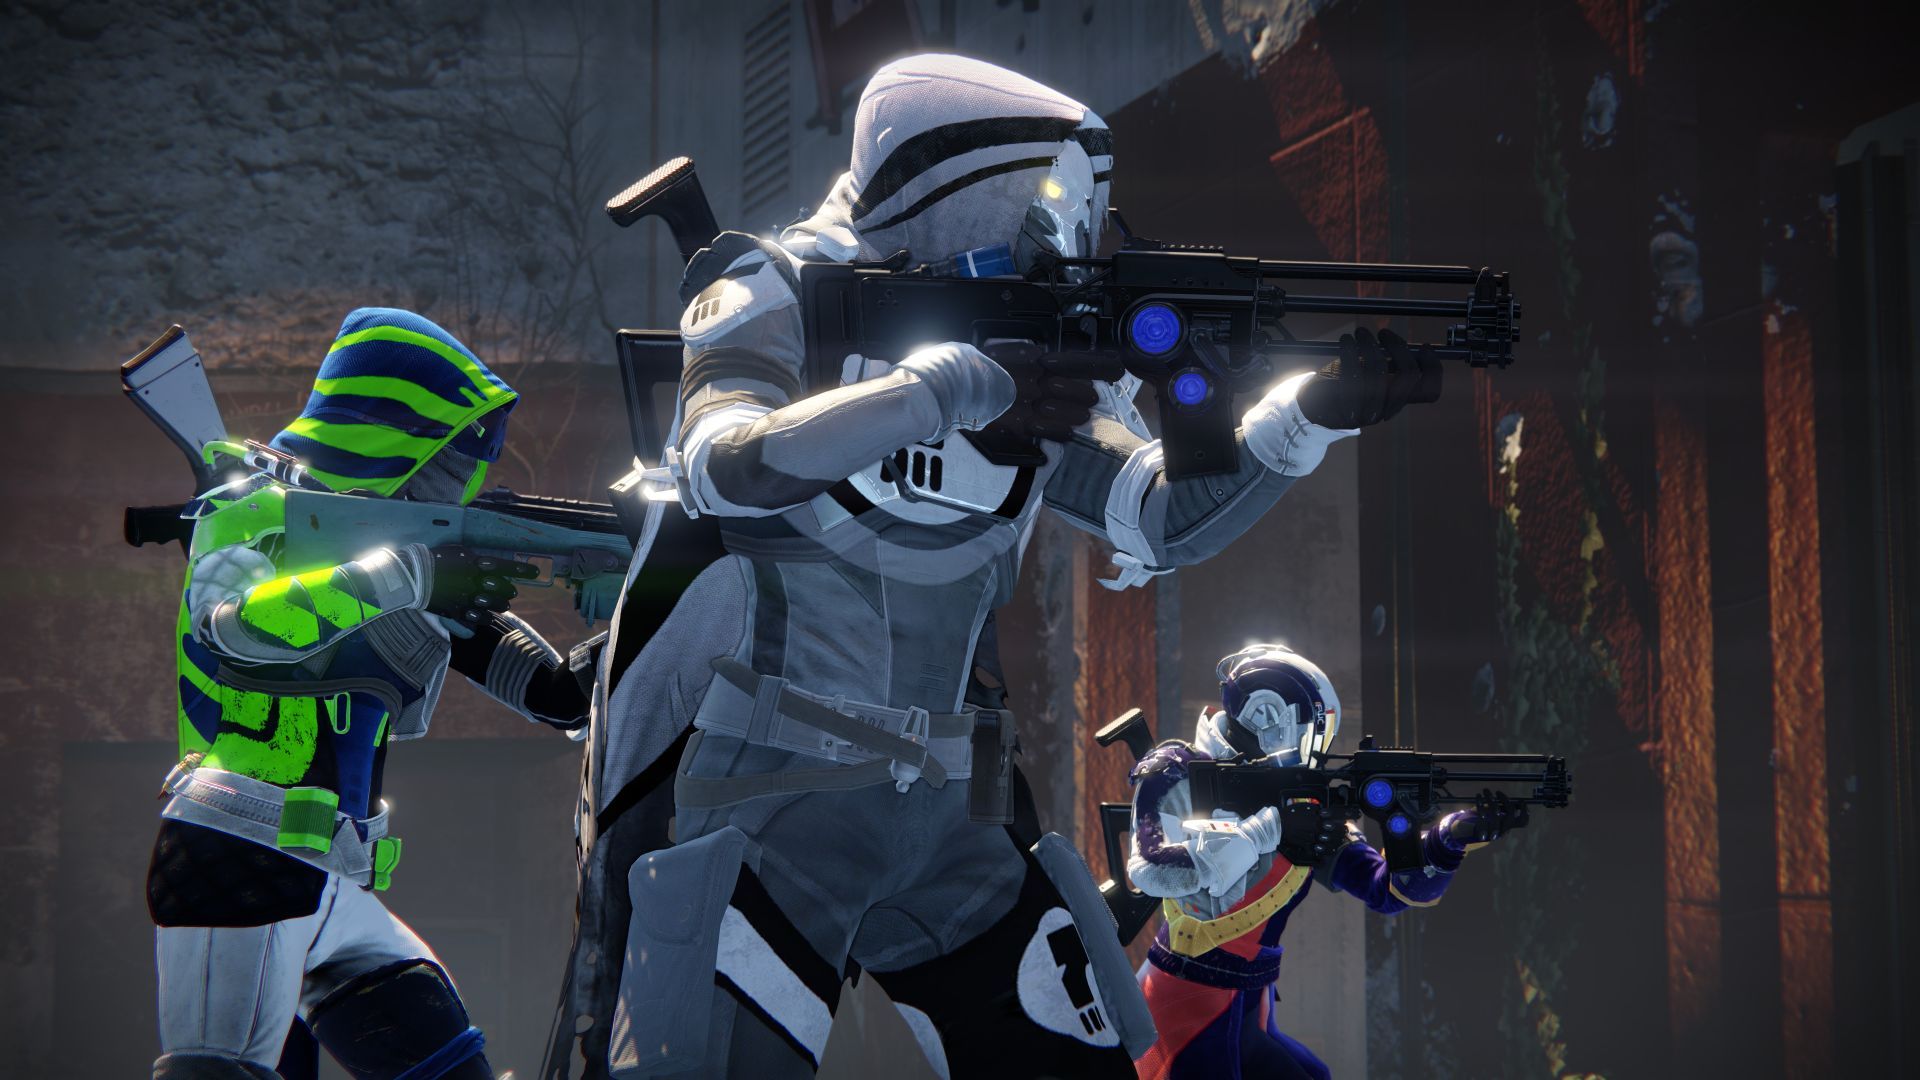 Destiny: The Taken King - how soon till the first sequel?